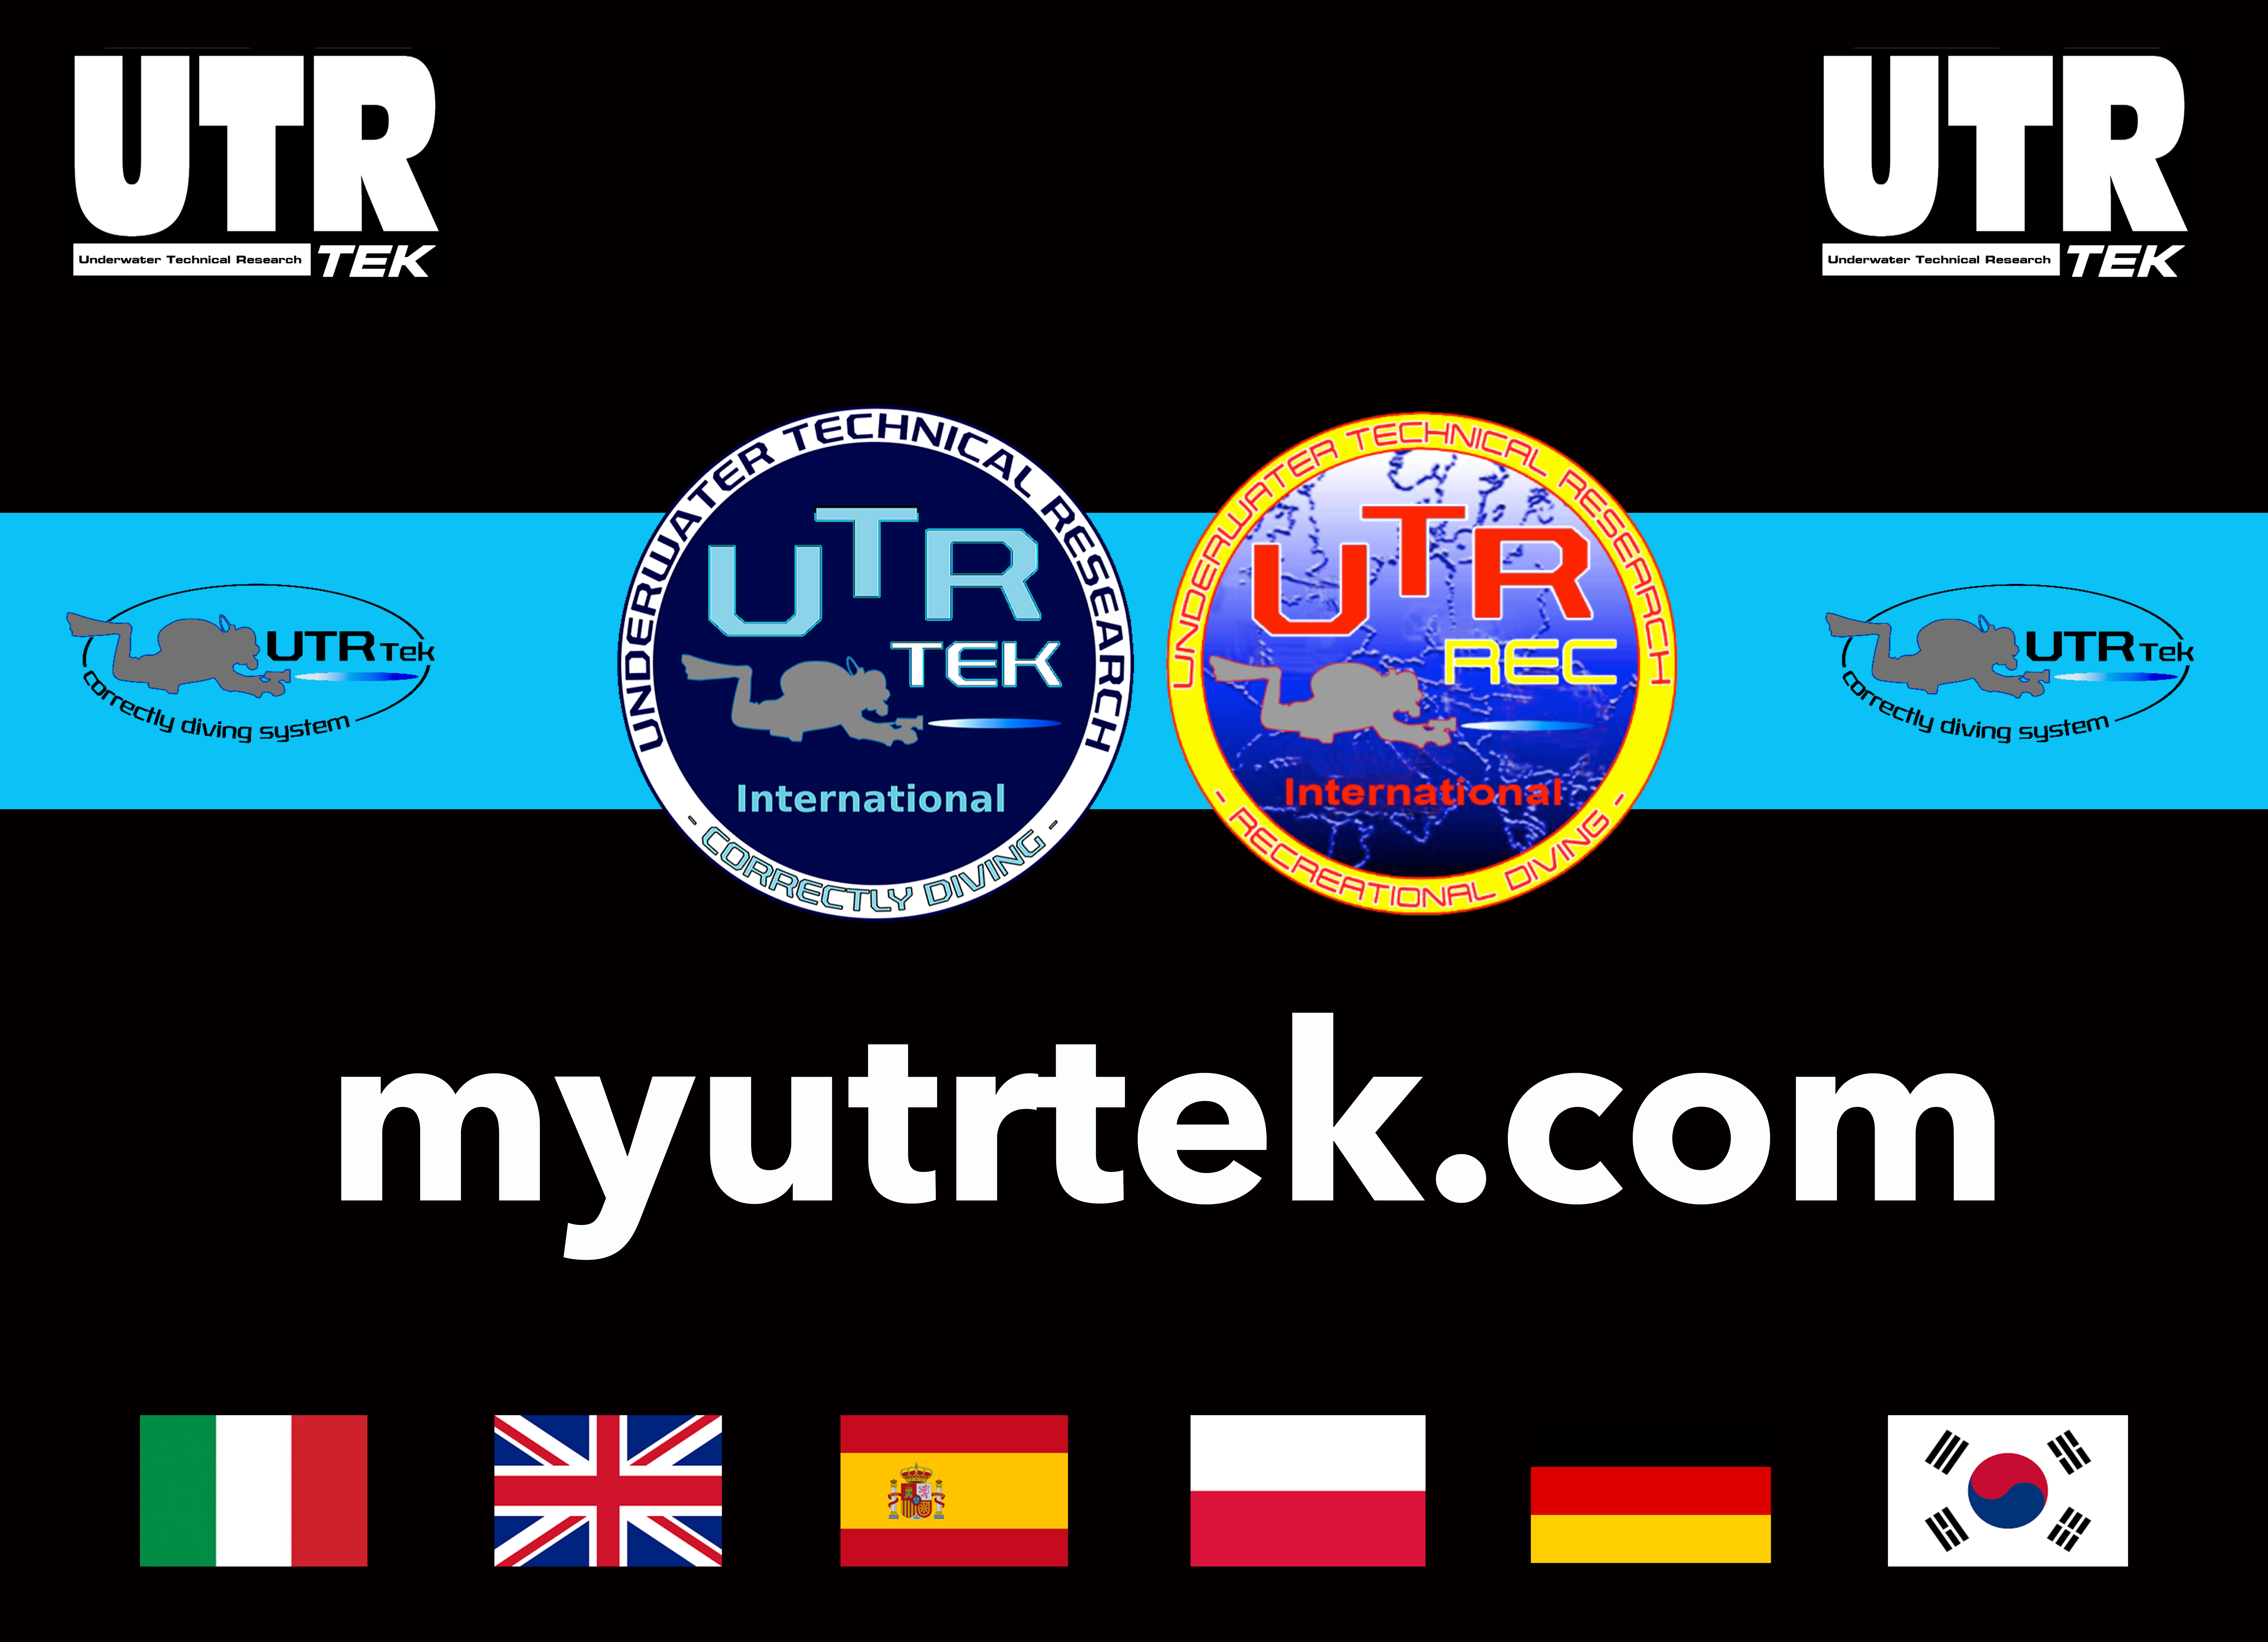 MYUTRTEK.COM USER MANUALS & TUTORIAL